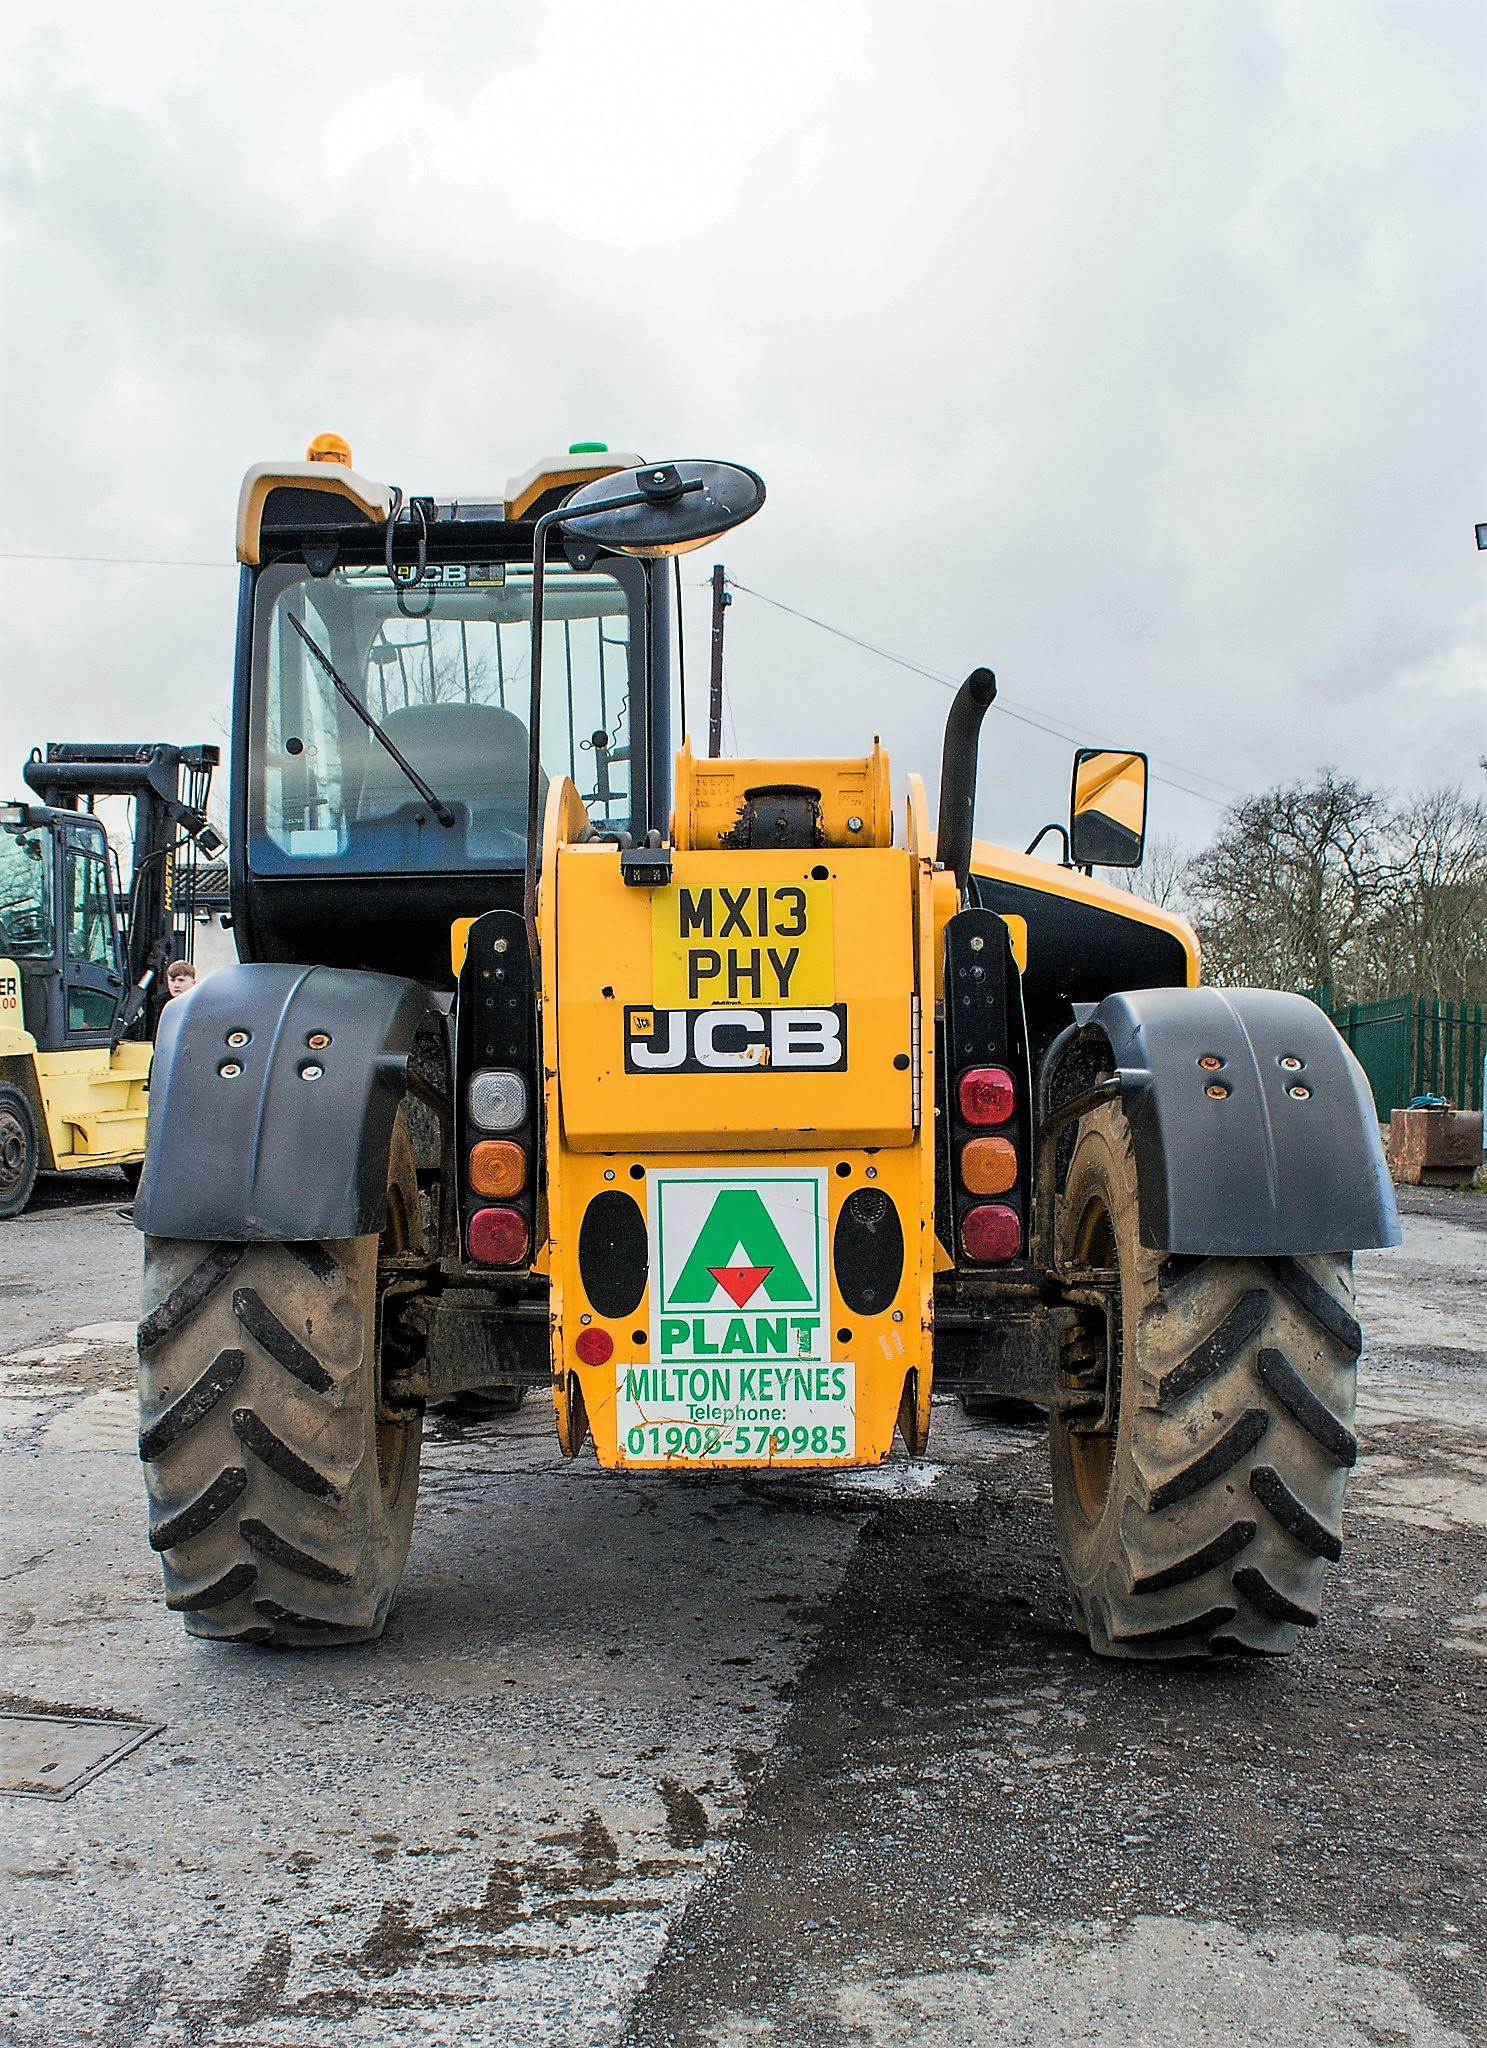 JCB 531-70 7 metre telescopic handler Year: 2013 S/N: 2176575 Reg No: MX13 PHY Recorded Hours: - Image 6 of 19